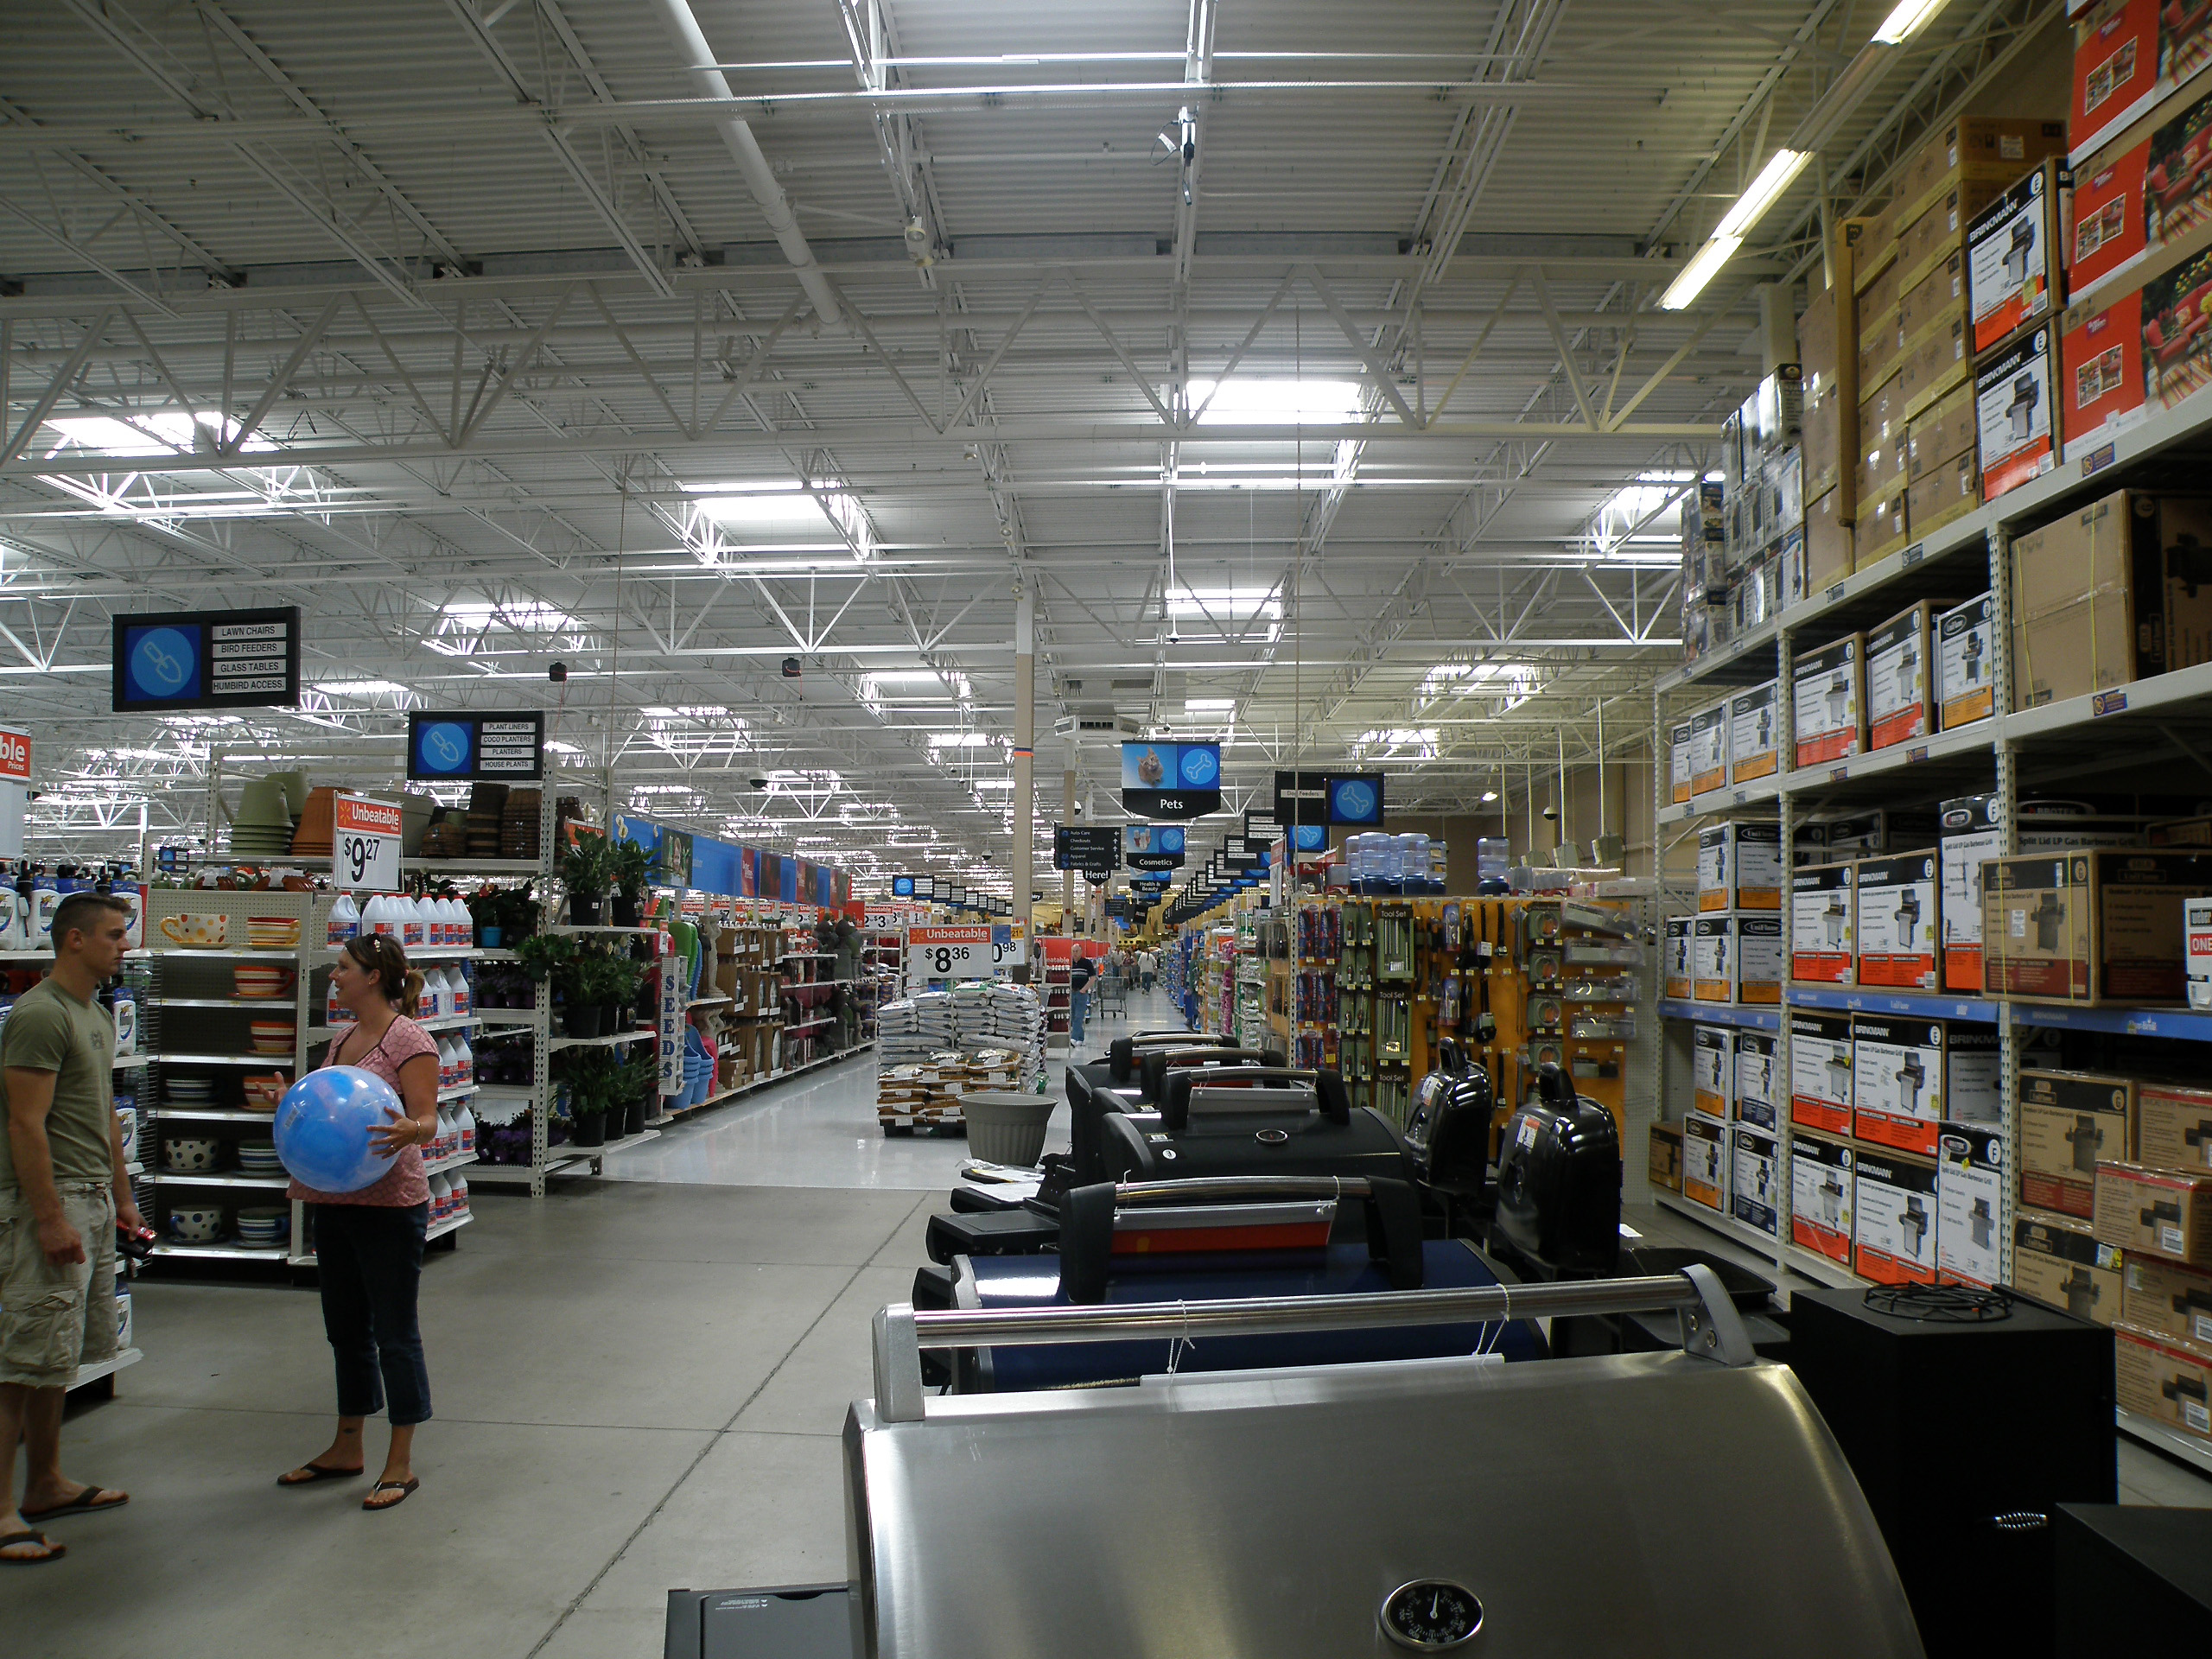 Walmart Supercenter Inside | www.imgkid.com - The Image ...